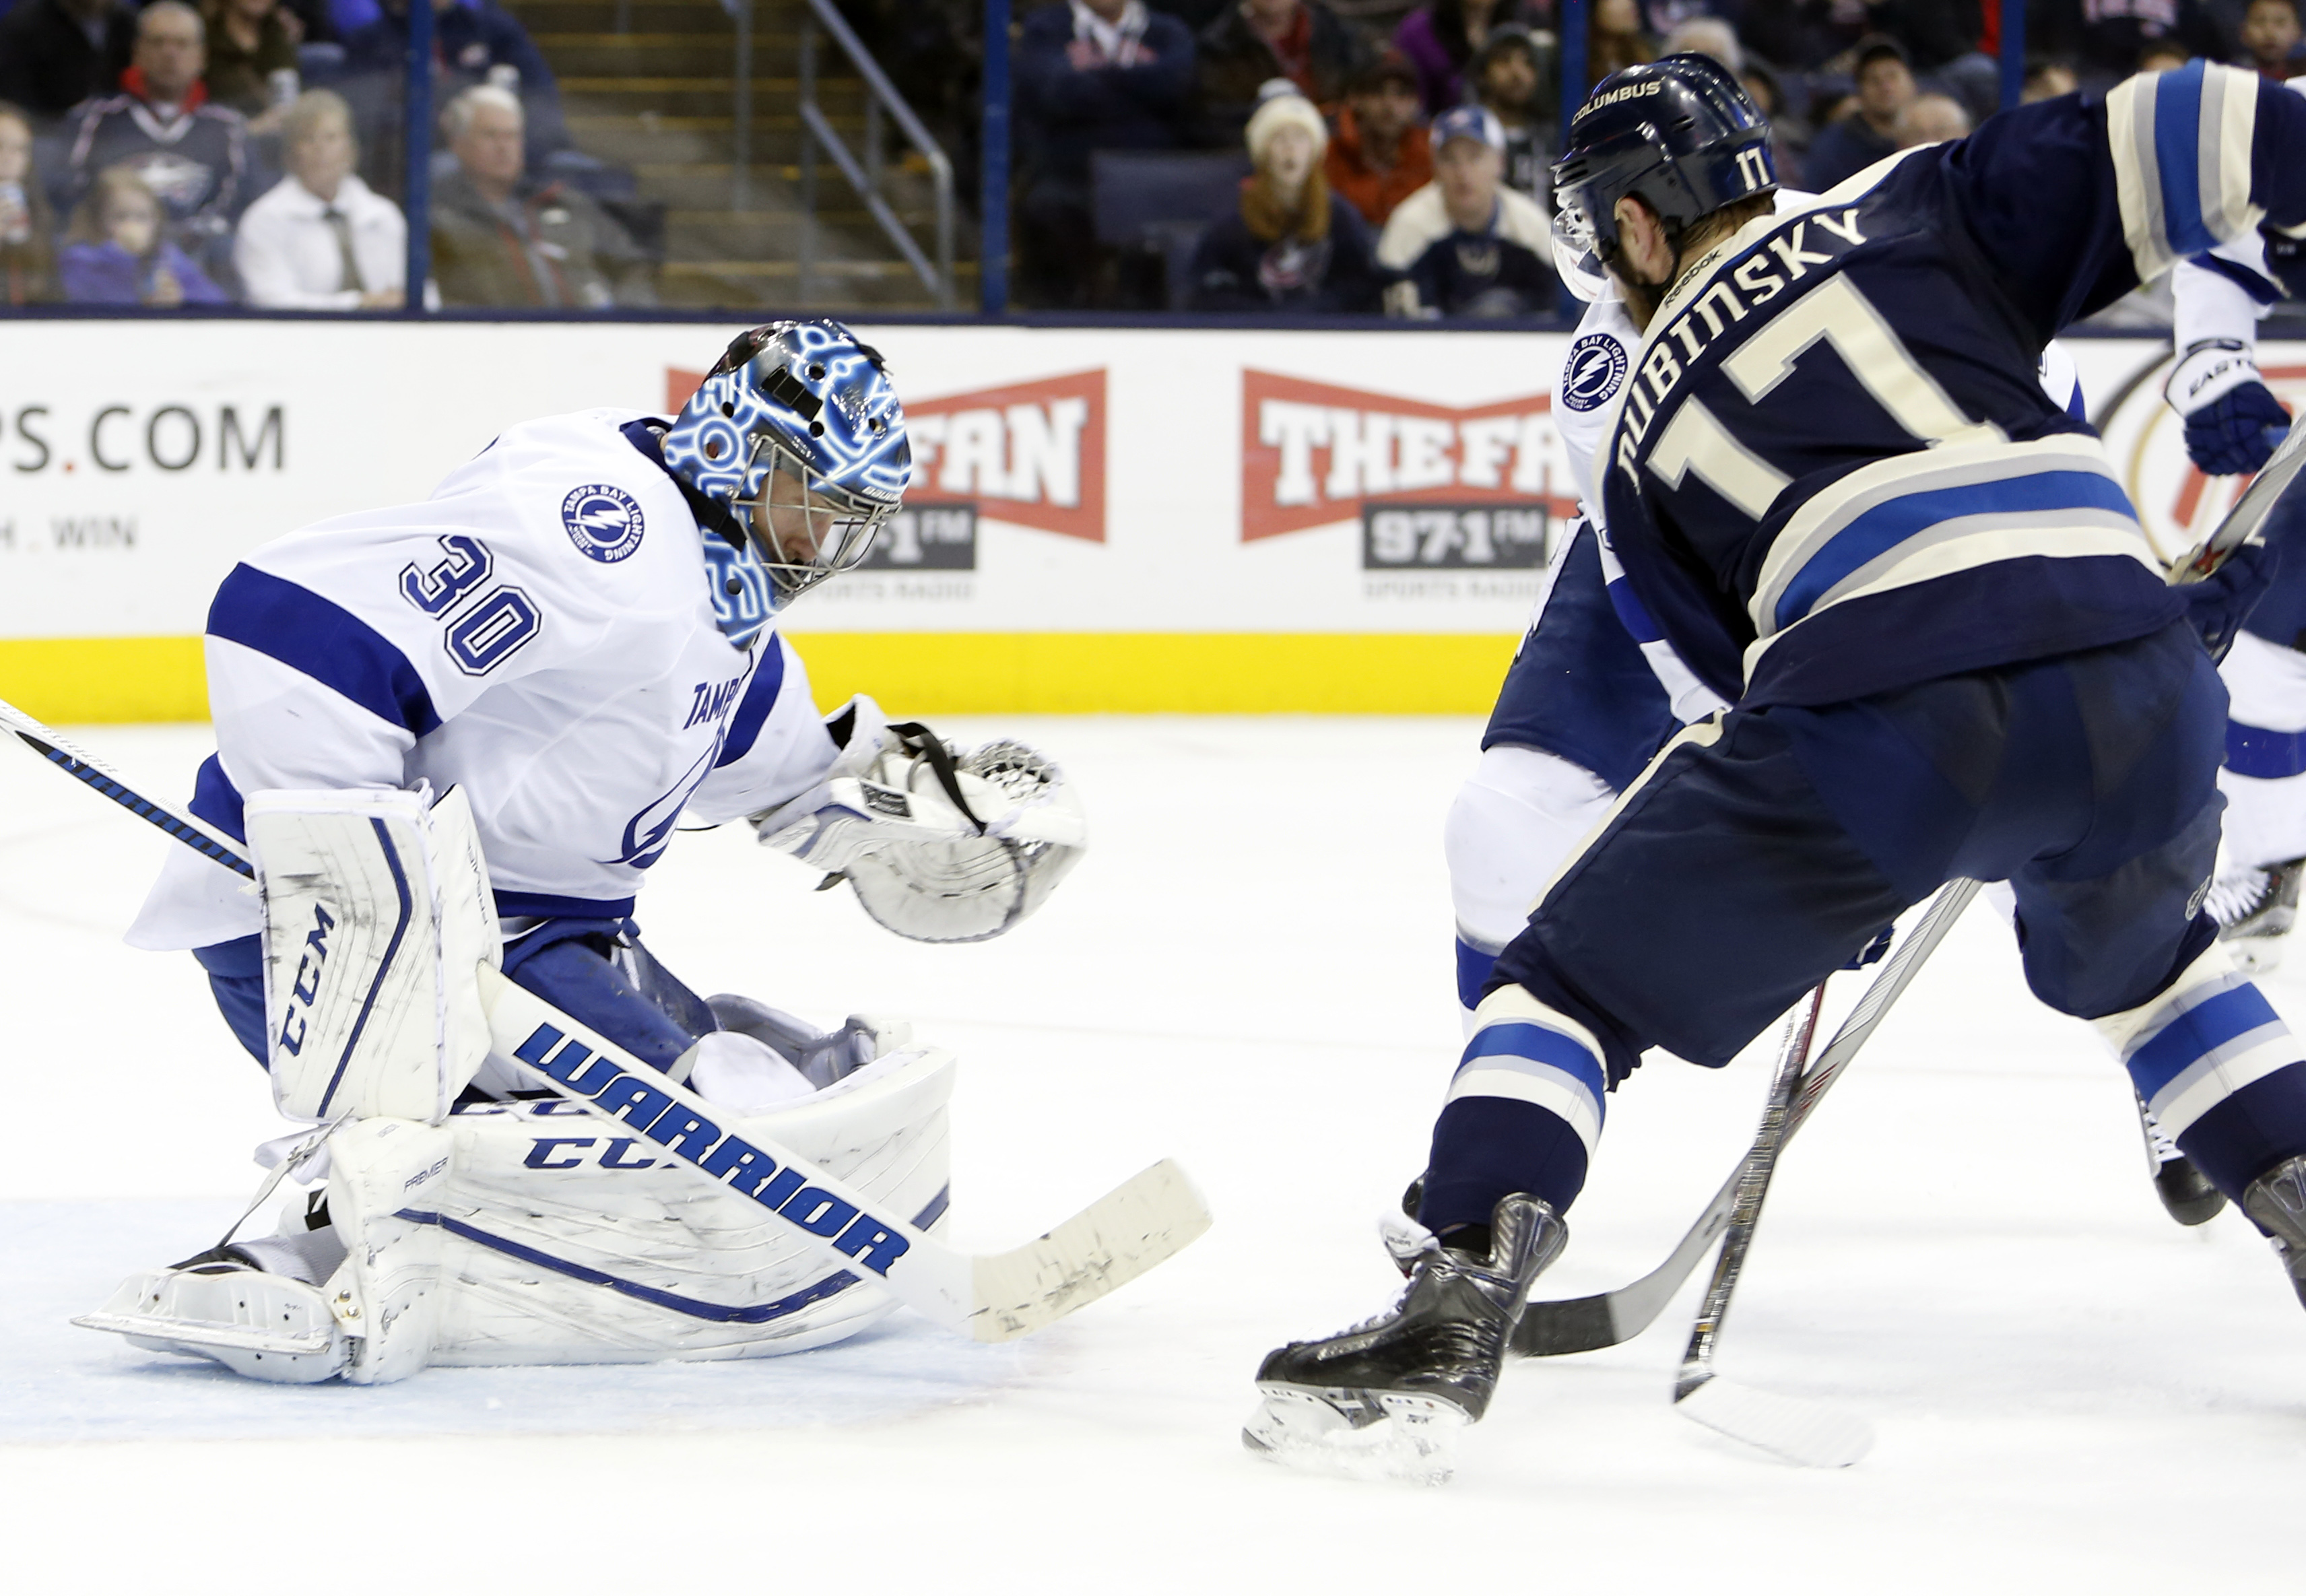 Tampa Bay Lightning's Ben Bishop, left, makes a save against Columbus Blue Jackets' Brandon Dubinsky during the second period of an NHL hockey game Sunday, March 13, 2016, in Columbus, Ohio. (AP Photo/Jay LaPrete)